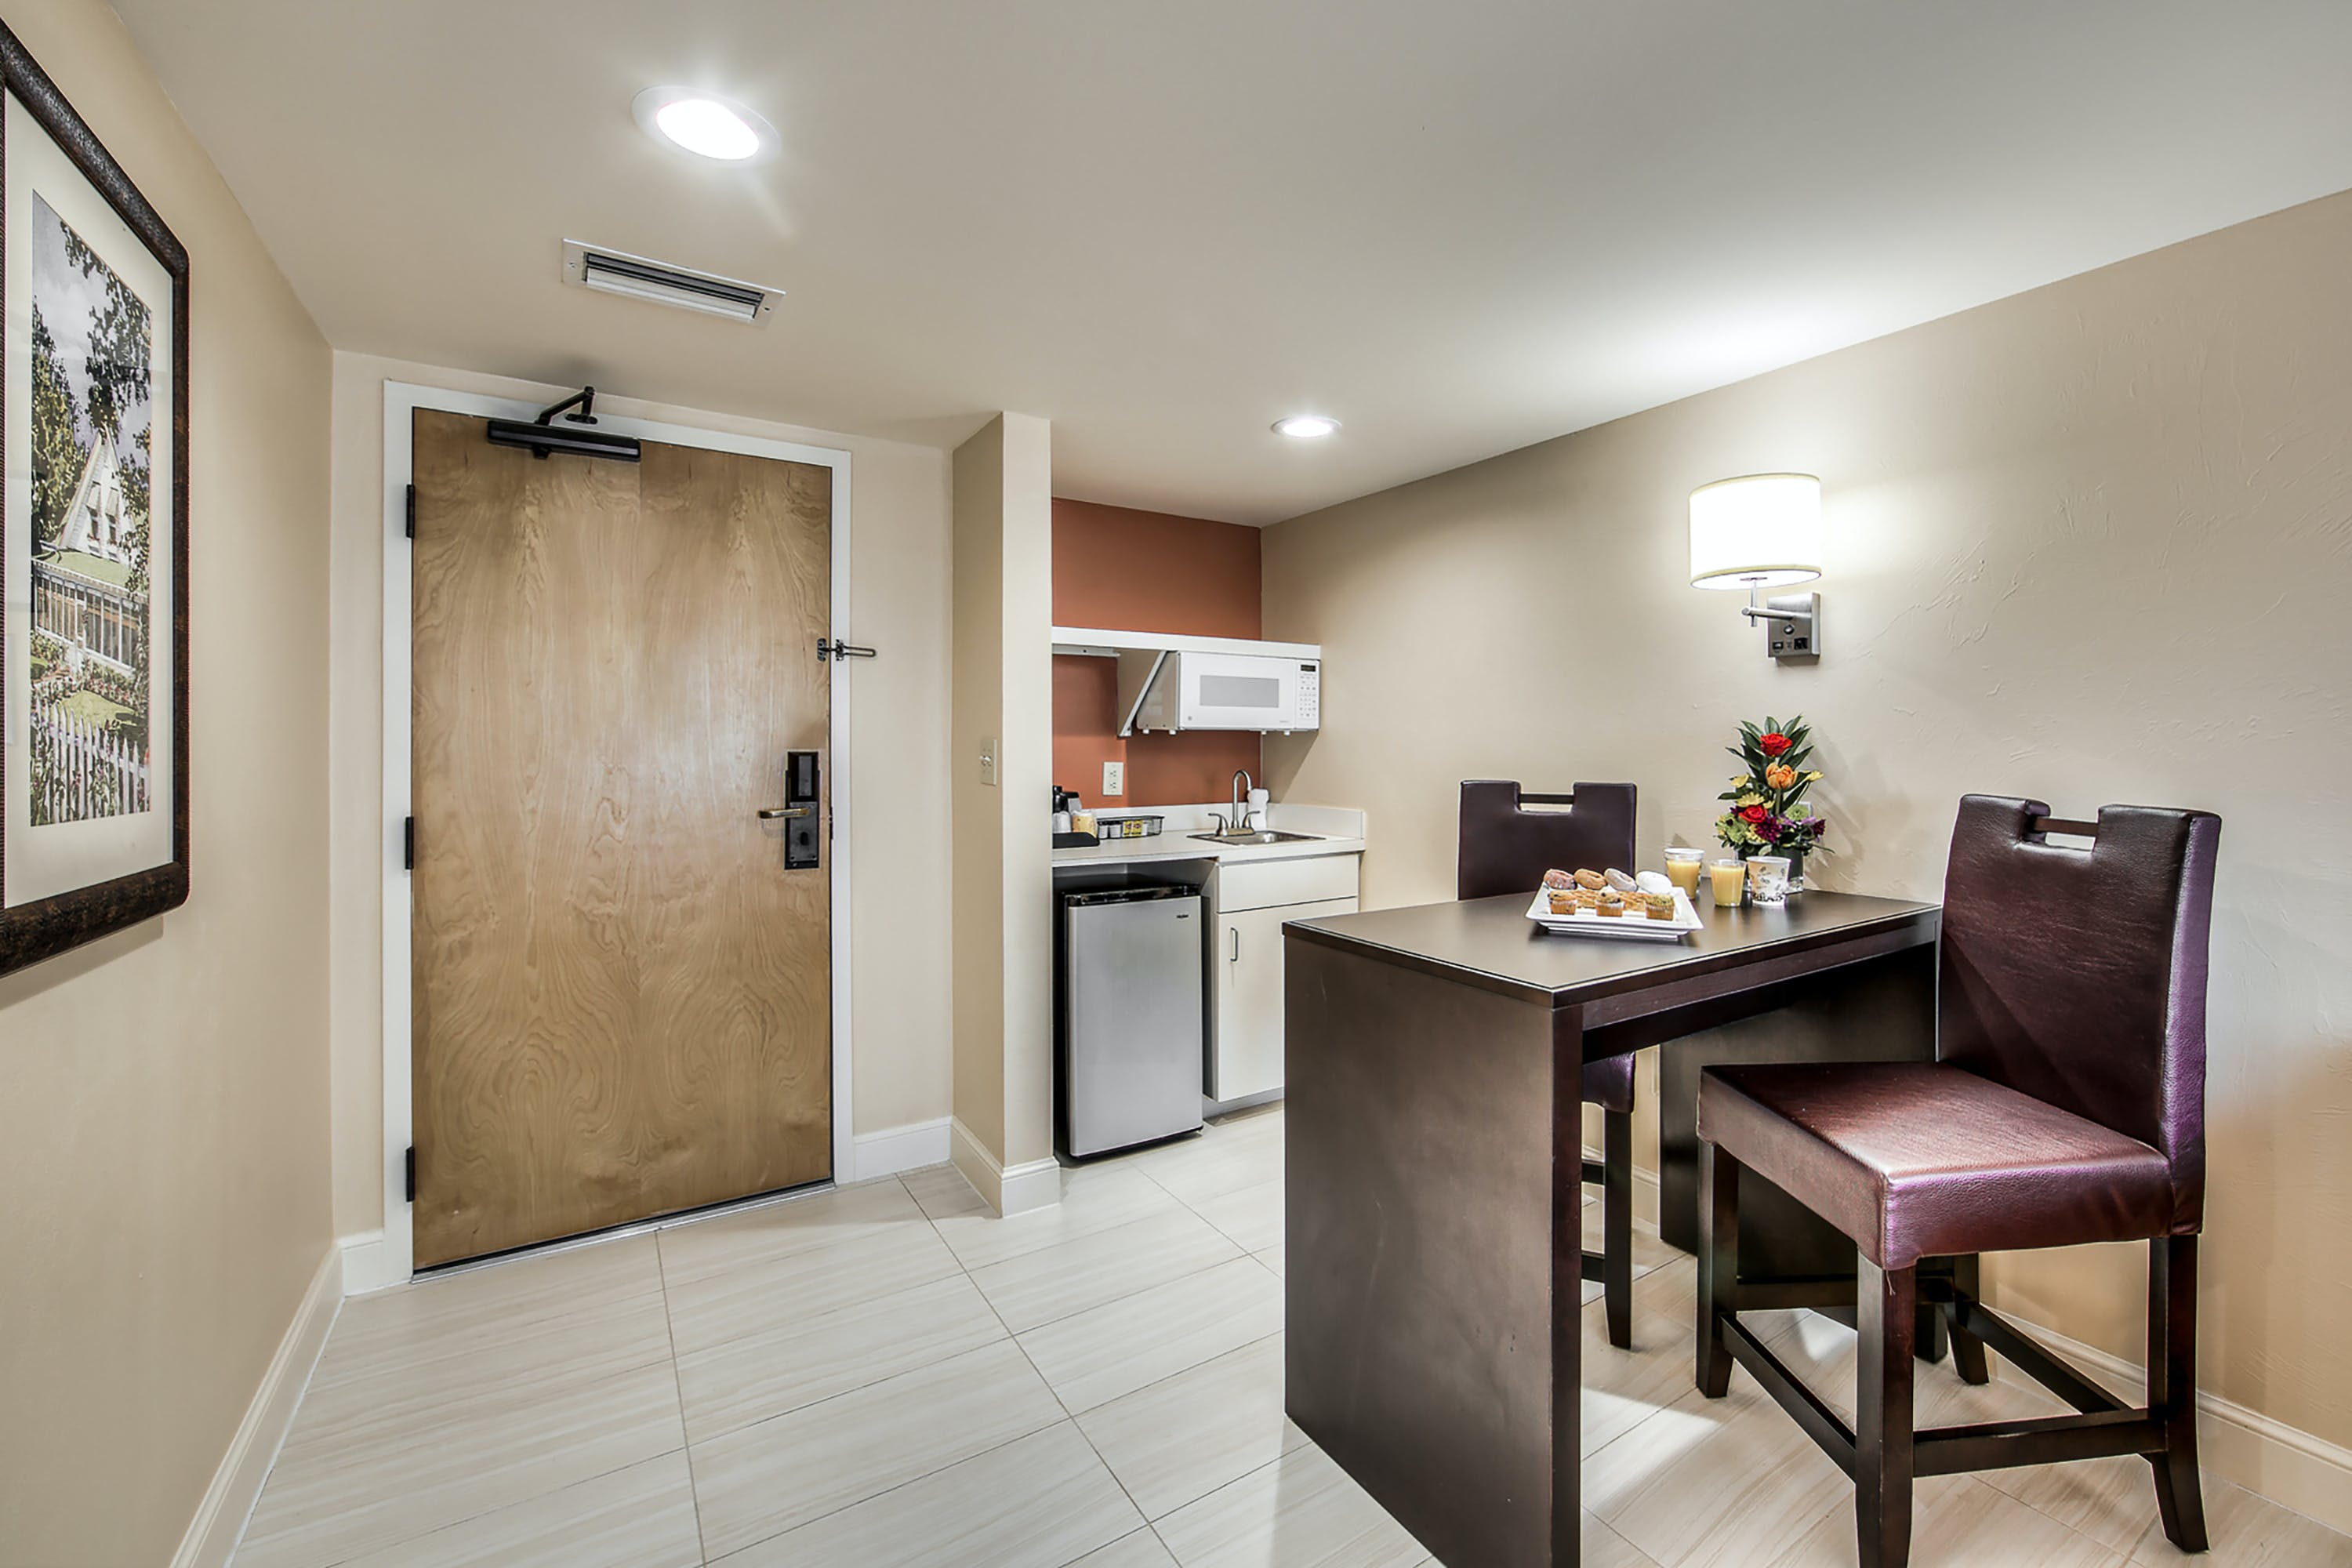 One Bedroom Suite dining area and kitchenette